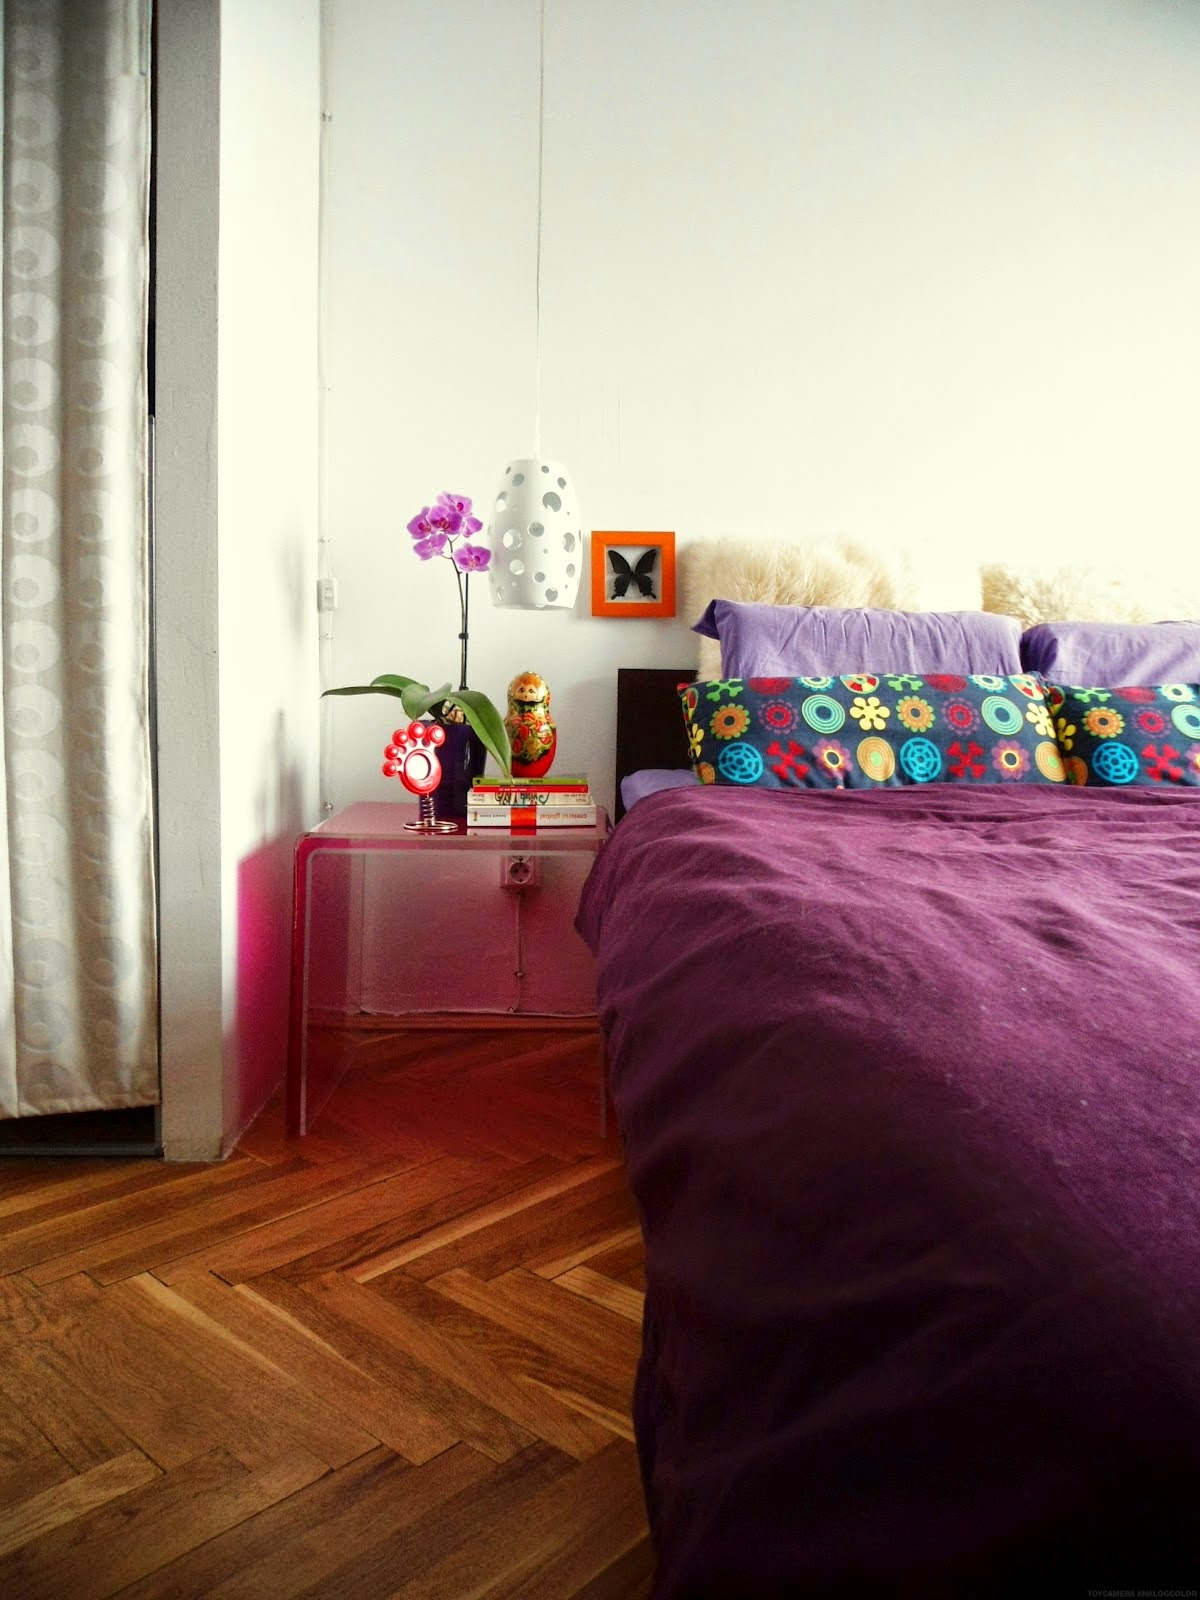 Decorate-your-Bedroom-With-Lavender-Flowers